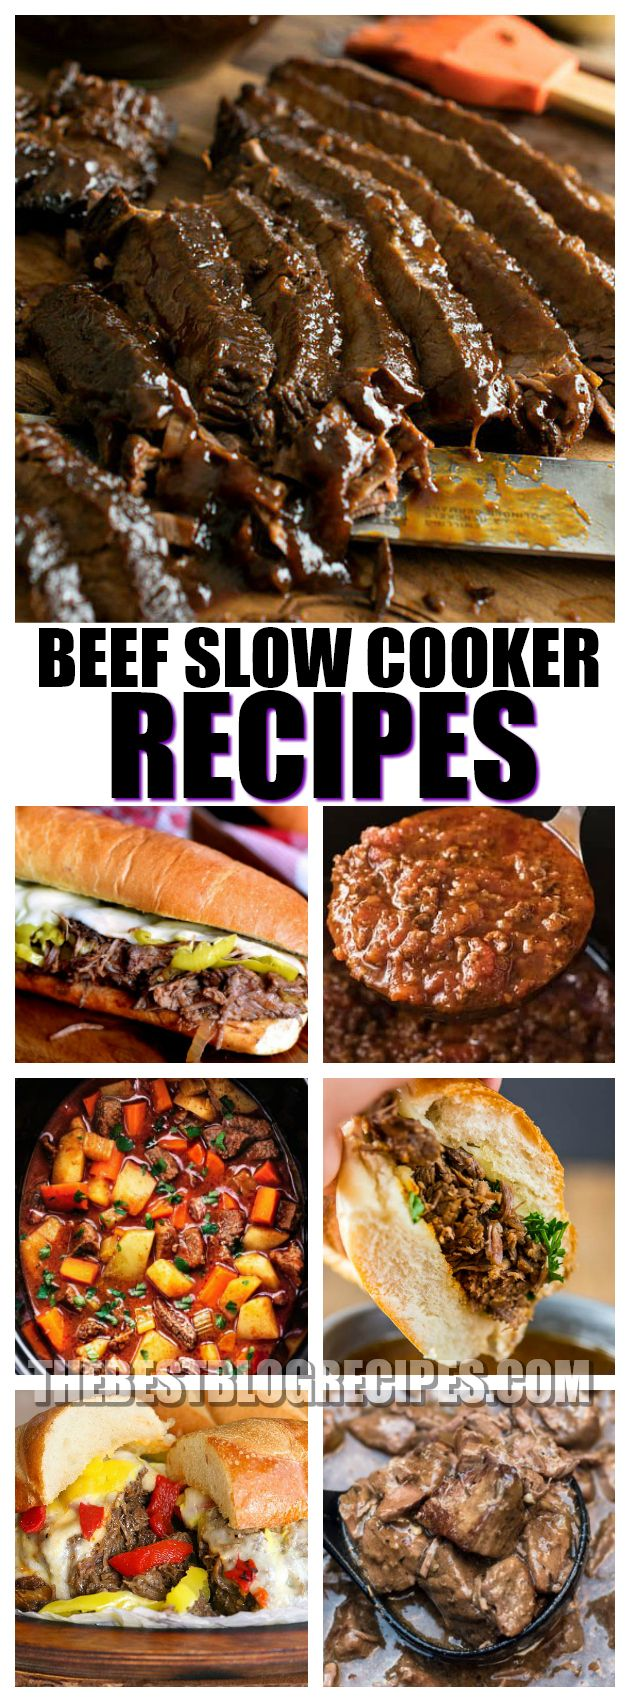 21+ Beef Slow Cooker Dinner Recipes that include Tacos, Sandwiches, Stew, and Brisket. These recipes are known for their deep flavors and easy directions. With their savory flavors and delicious ingredients, you can be sure that any of these recipes will be a favorite among your guests!